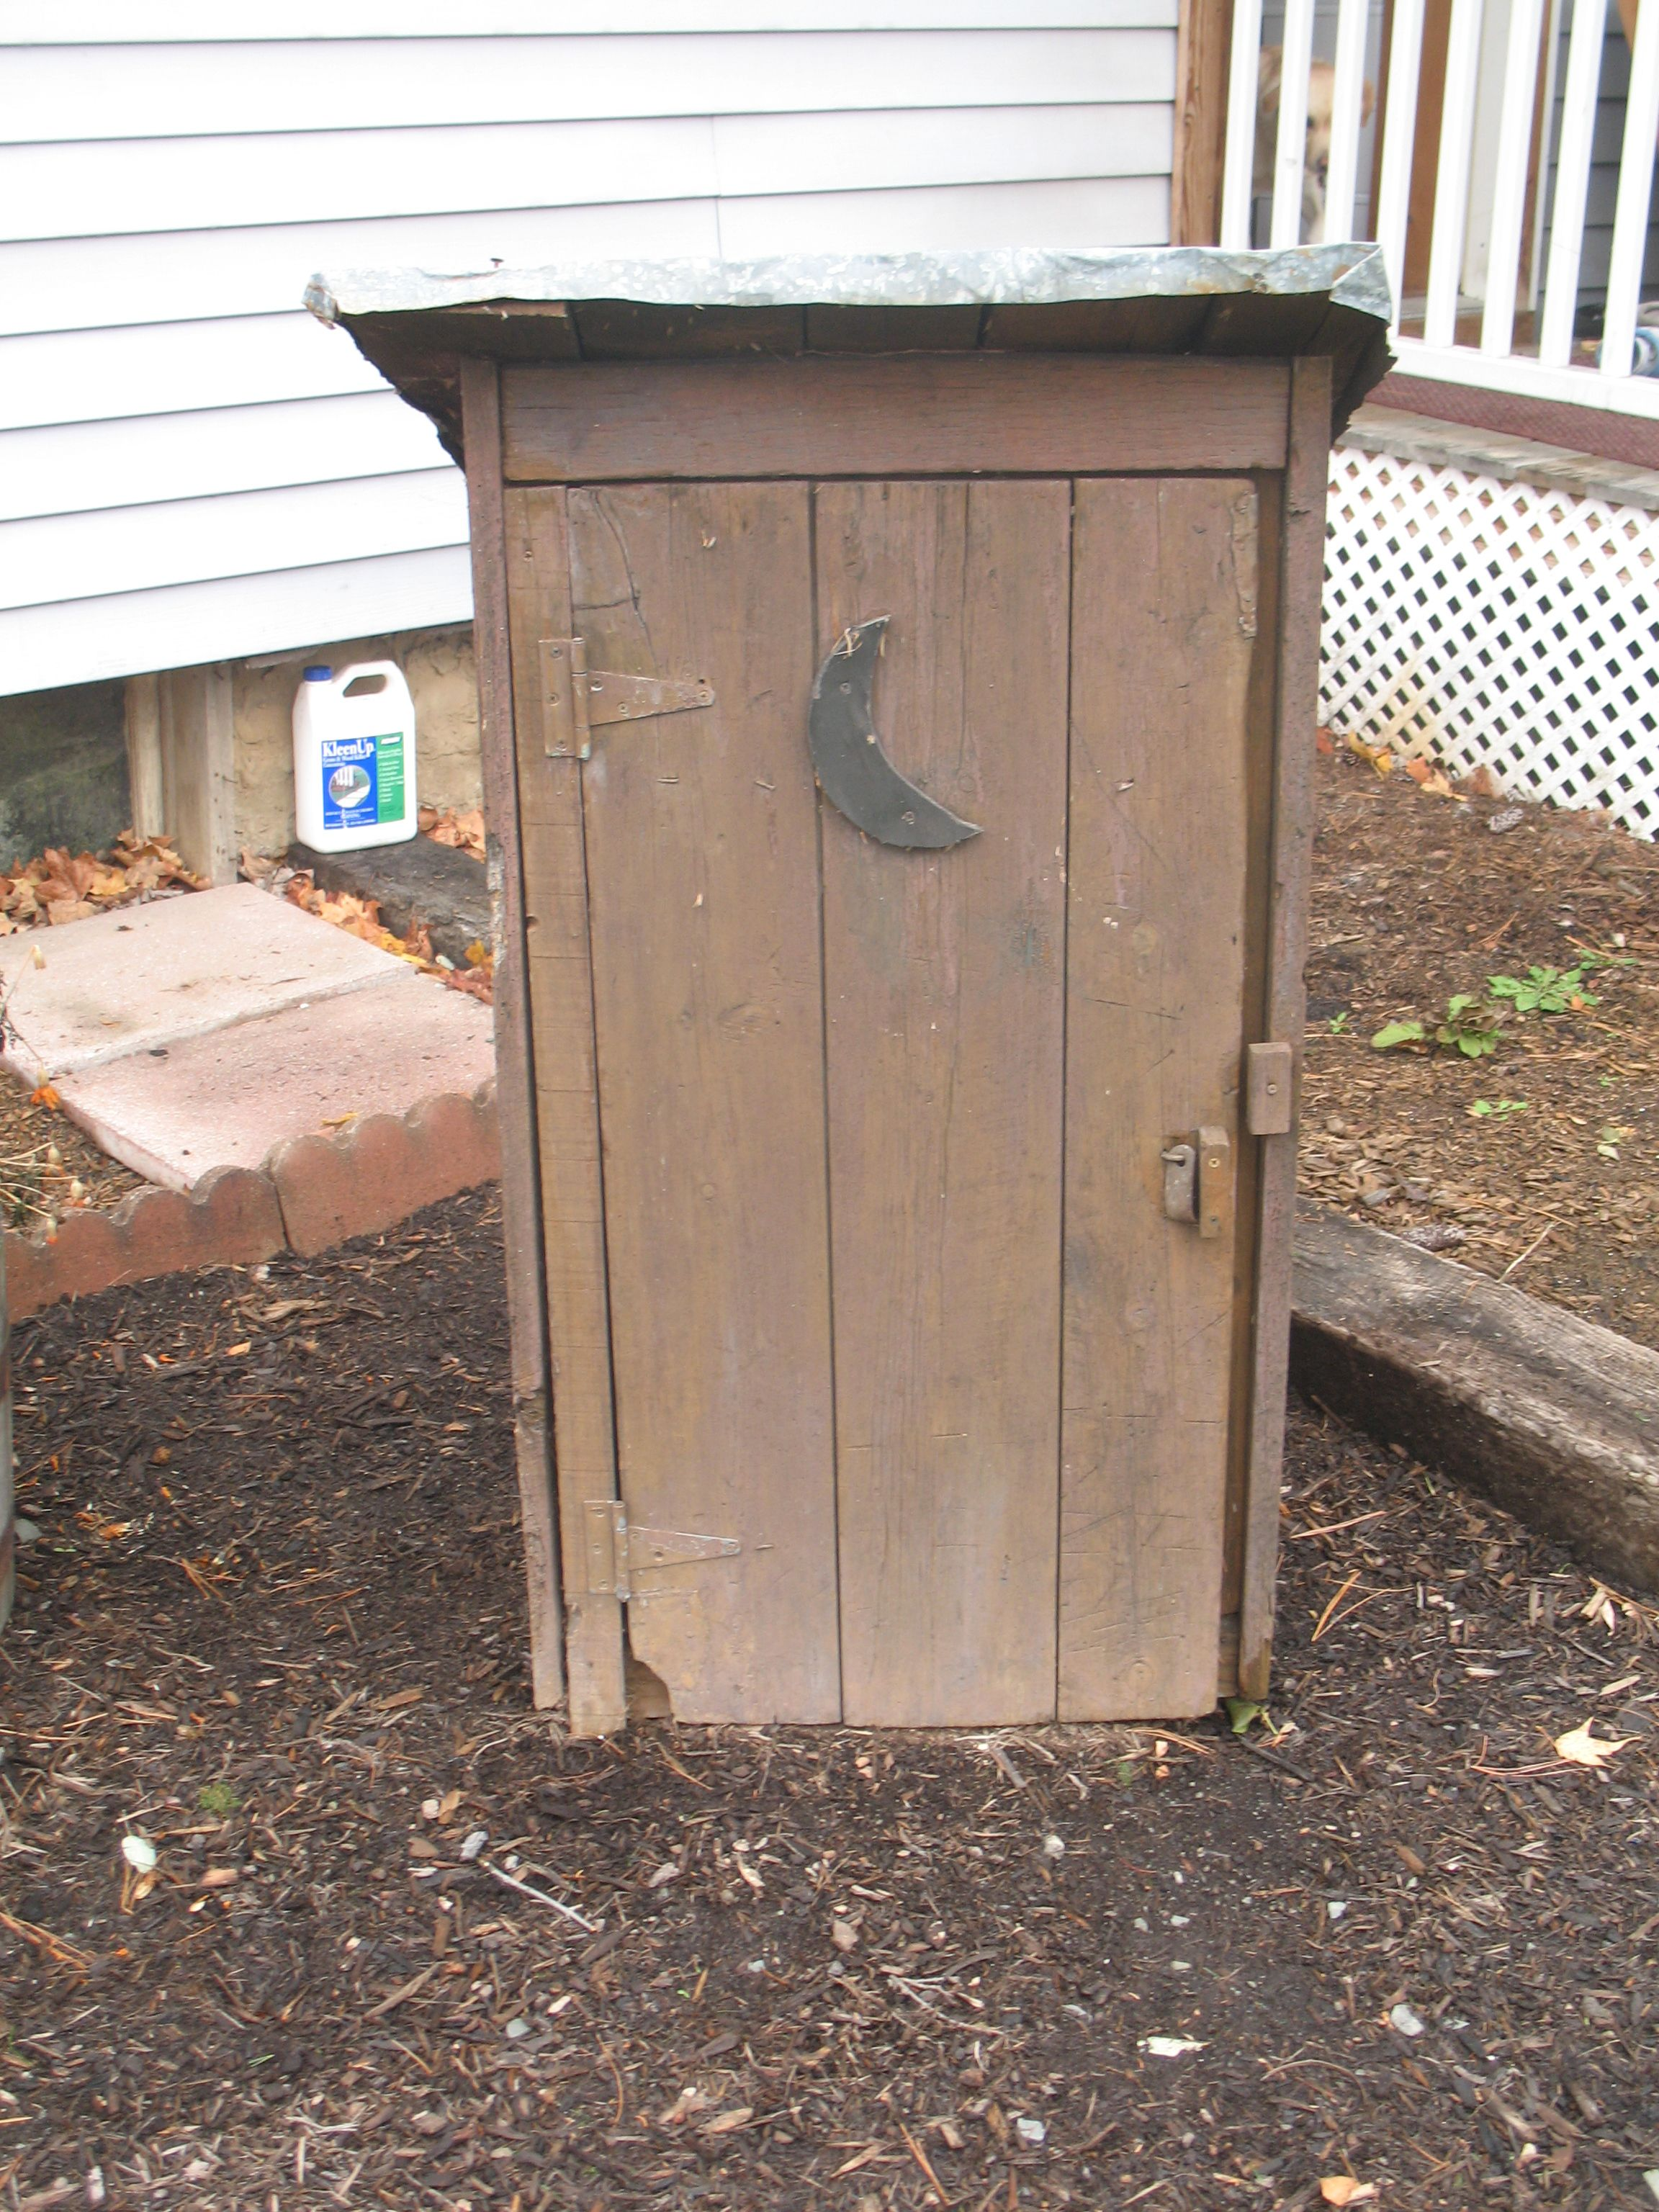 This Is My Little Idea To Hide A Garden Hose. Inside This Fake Outhouse I